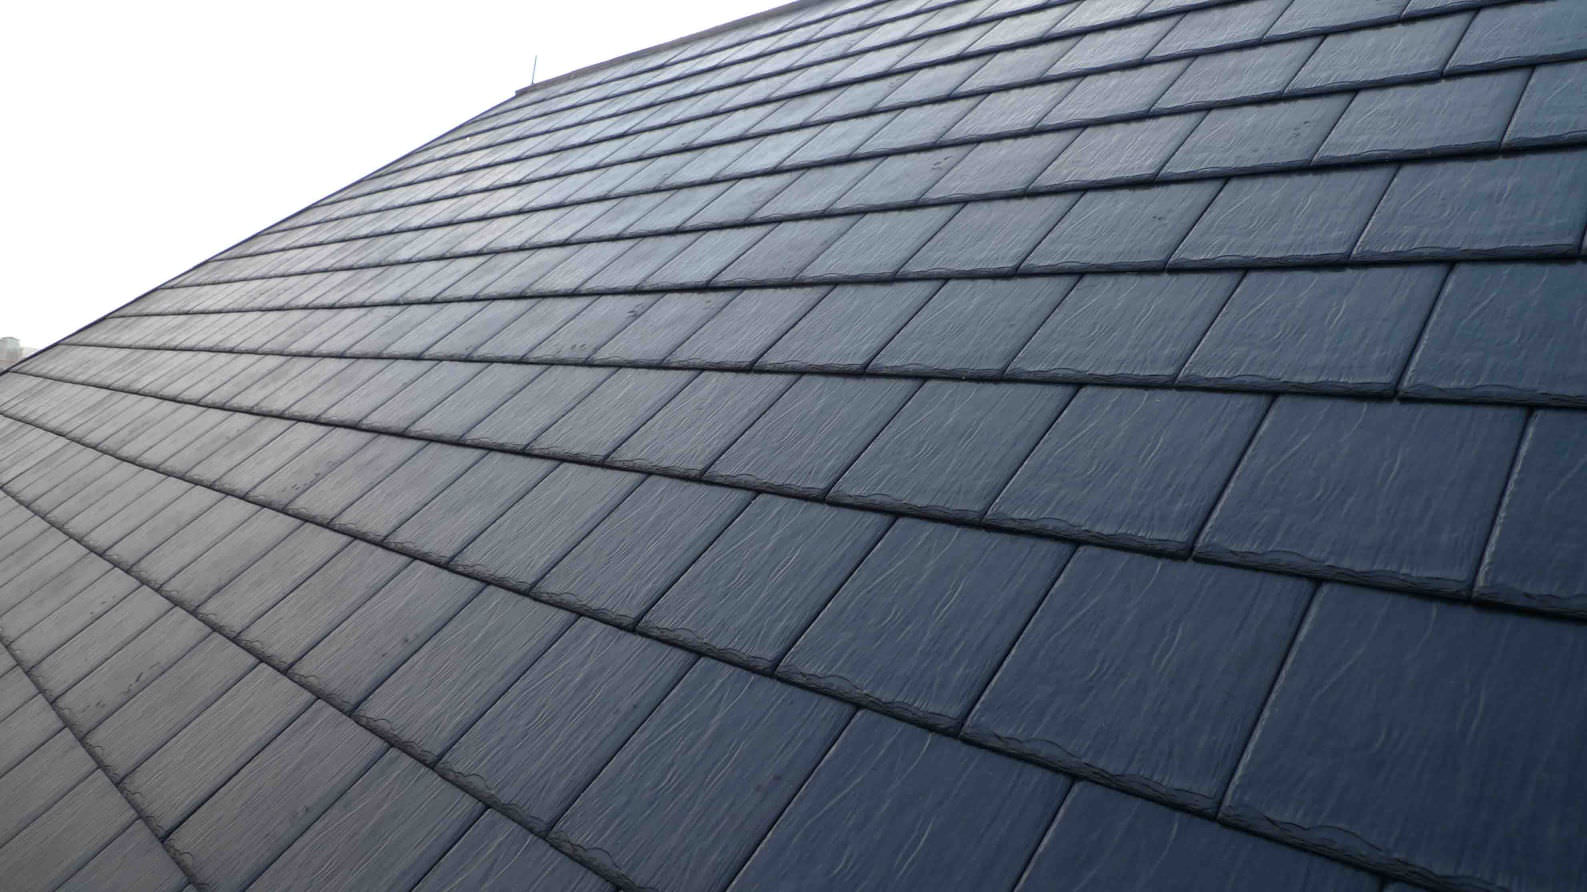 Flat roof tile / stone / black / gray - SYNTHETIC - FANGXING ...